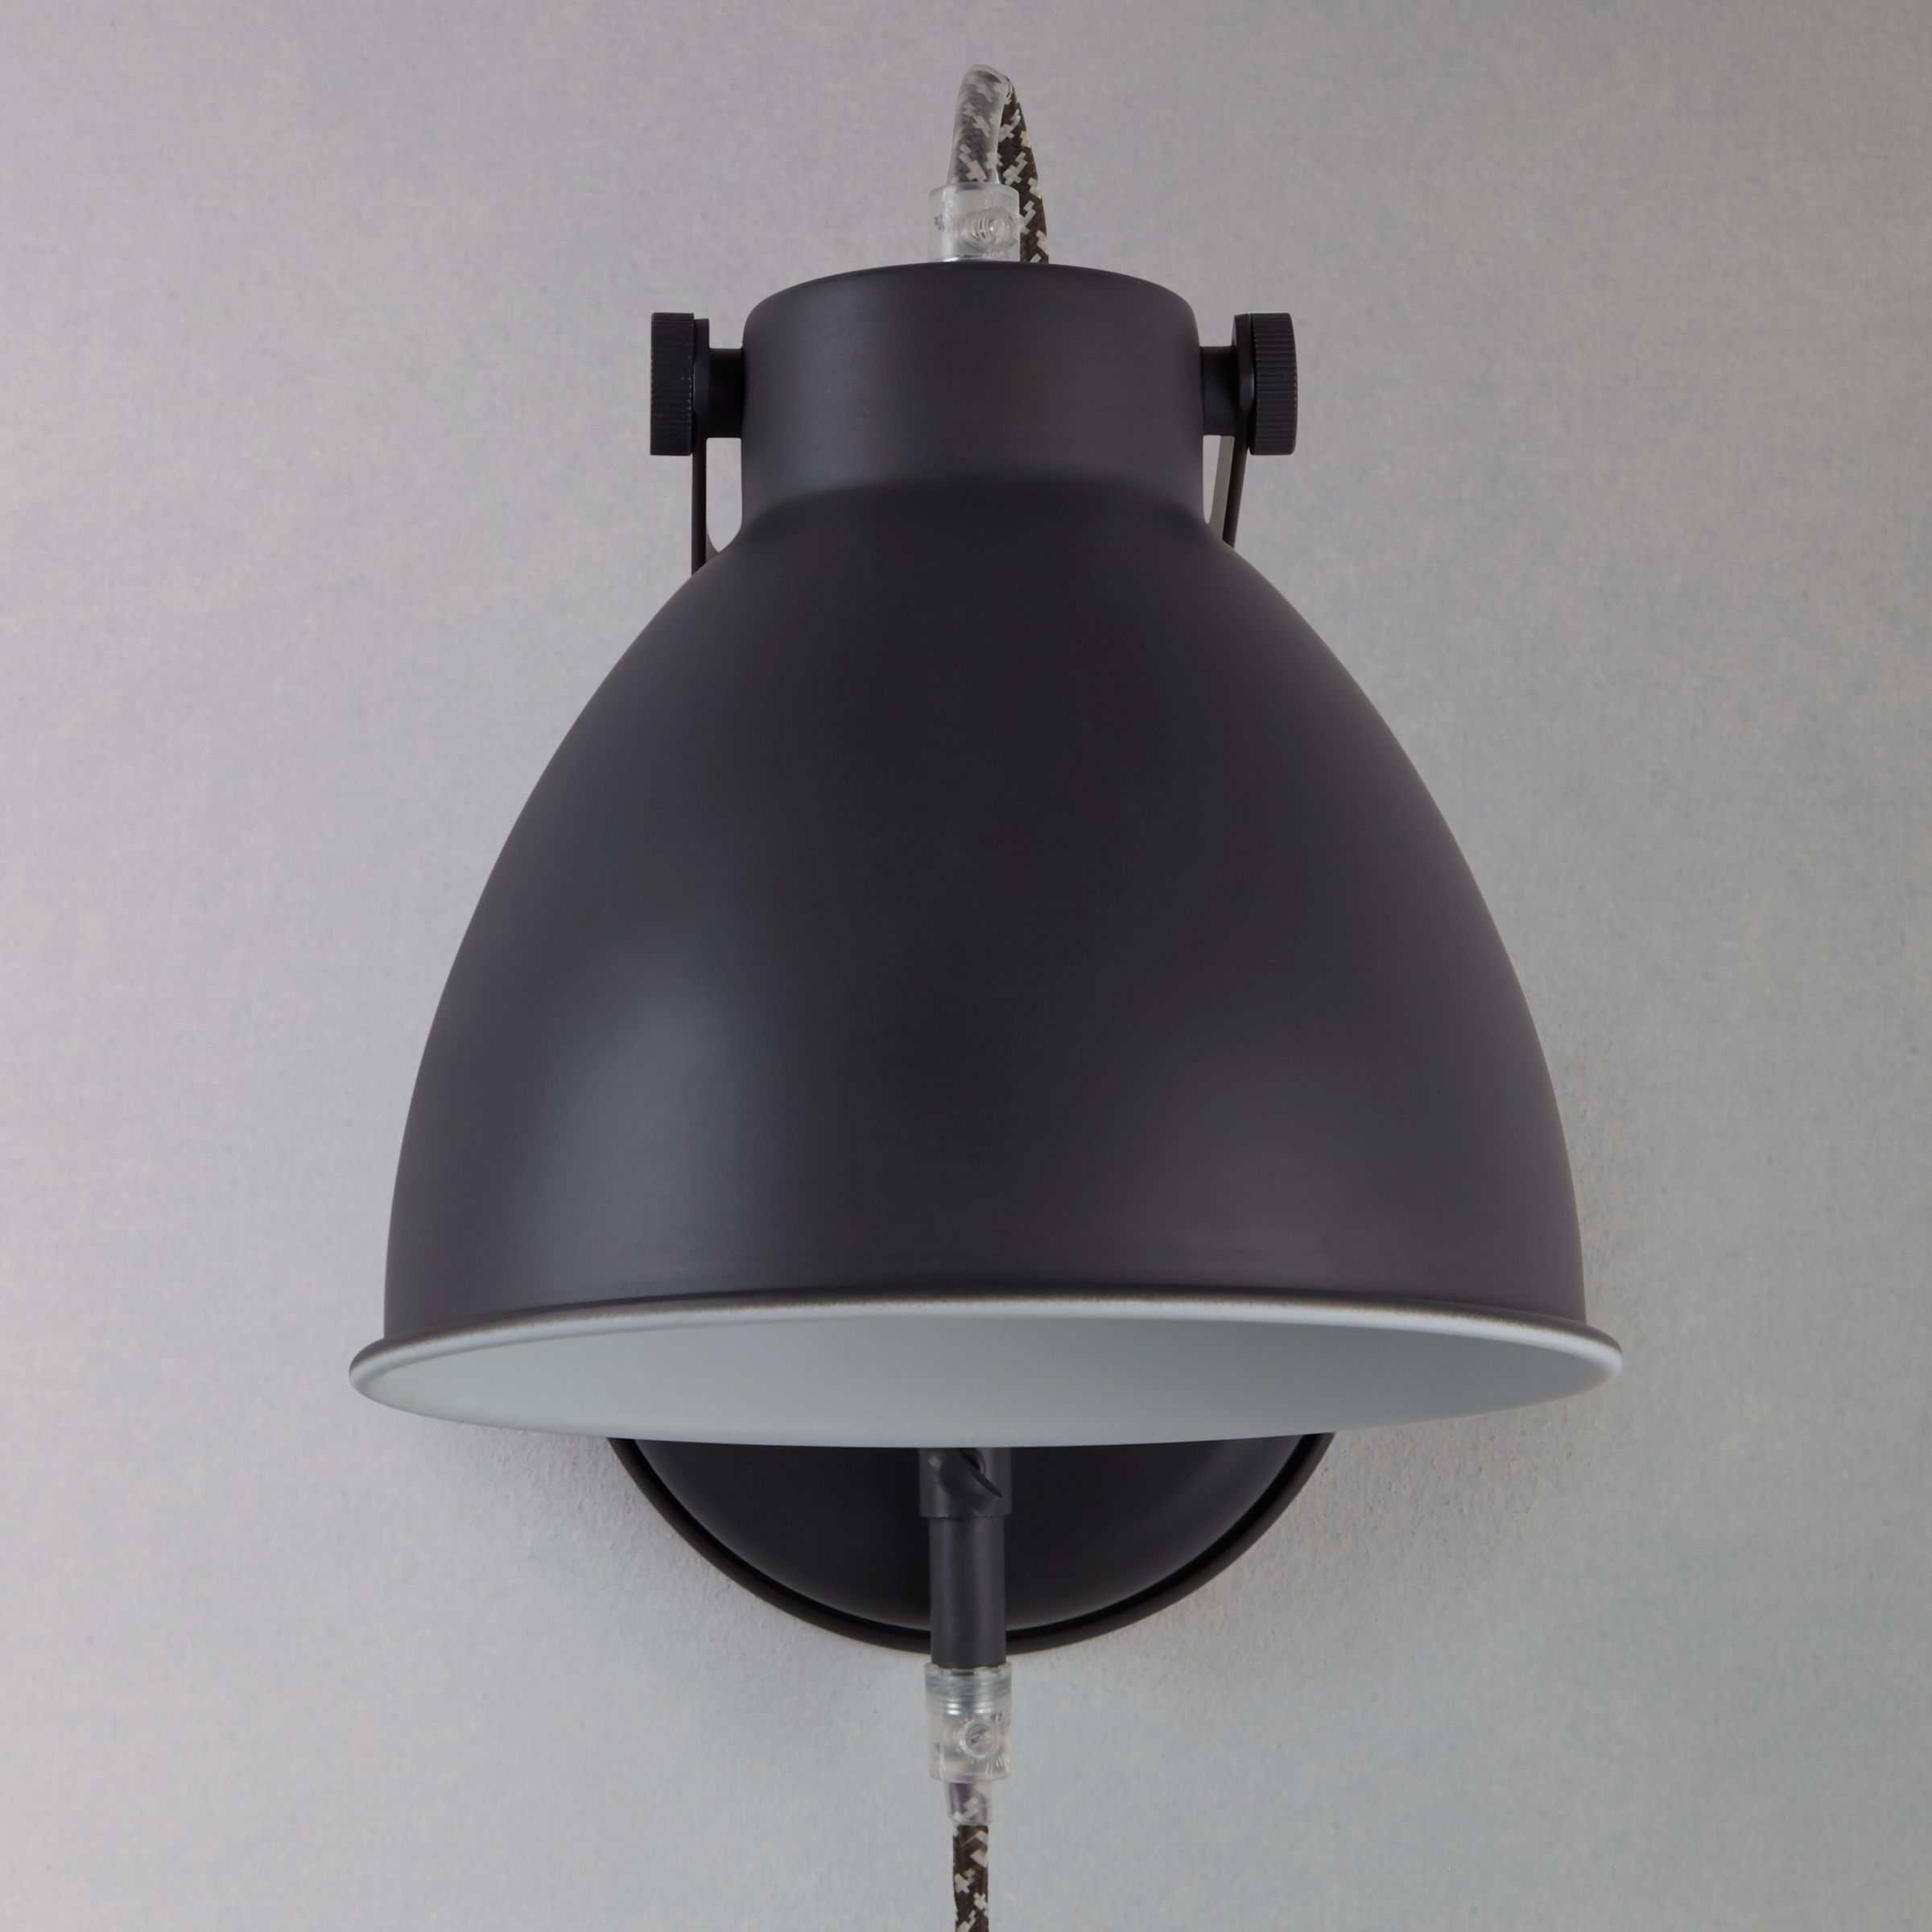 Wall Light With Cable : Buy John Lewis Norton Wall Light with Cable John Lewis